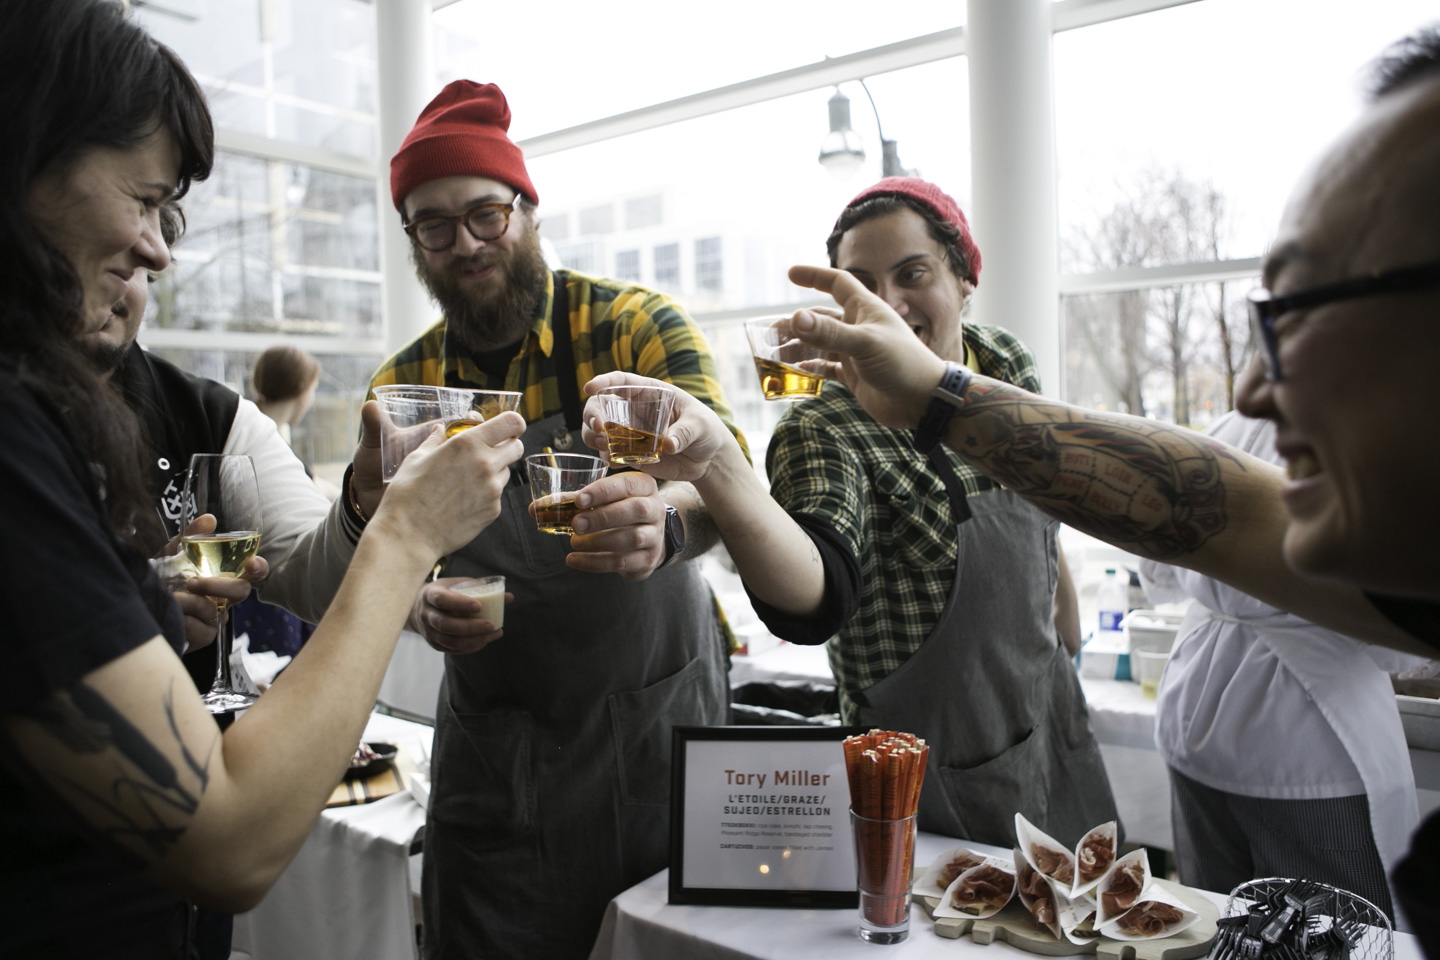 Local celebrity chef, Tory Miller, toasts to Chef Week with his employees. Miller was recently nominated for what would be his second James Beard Award.